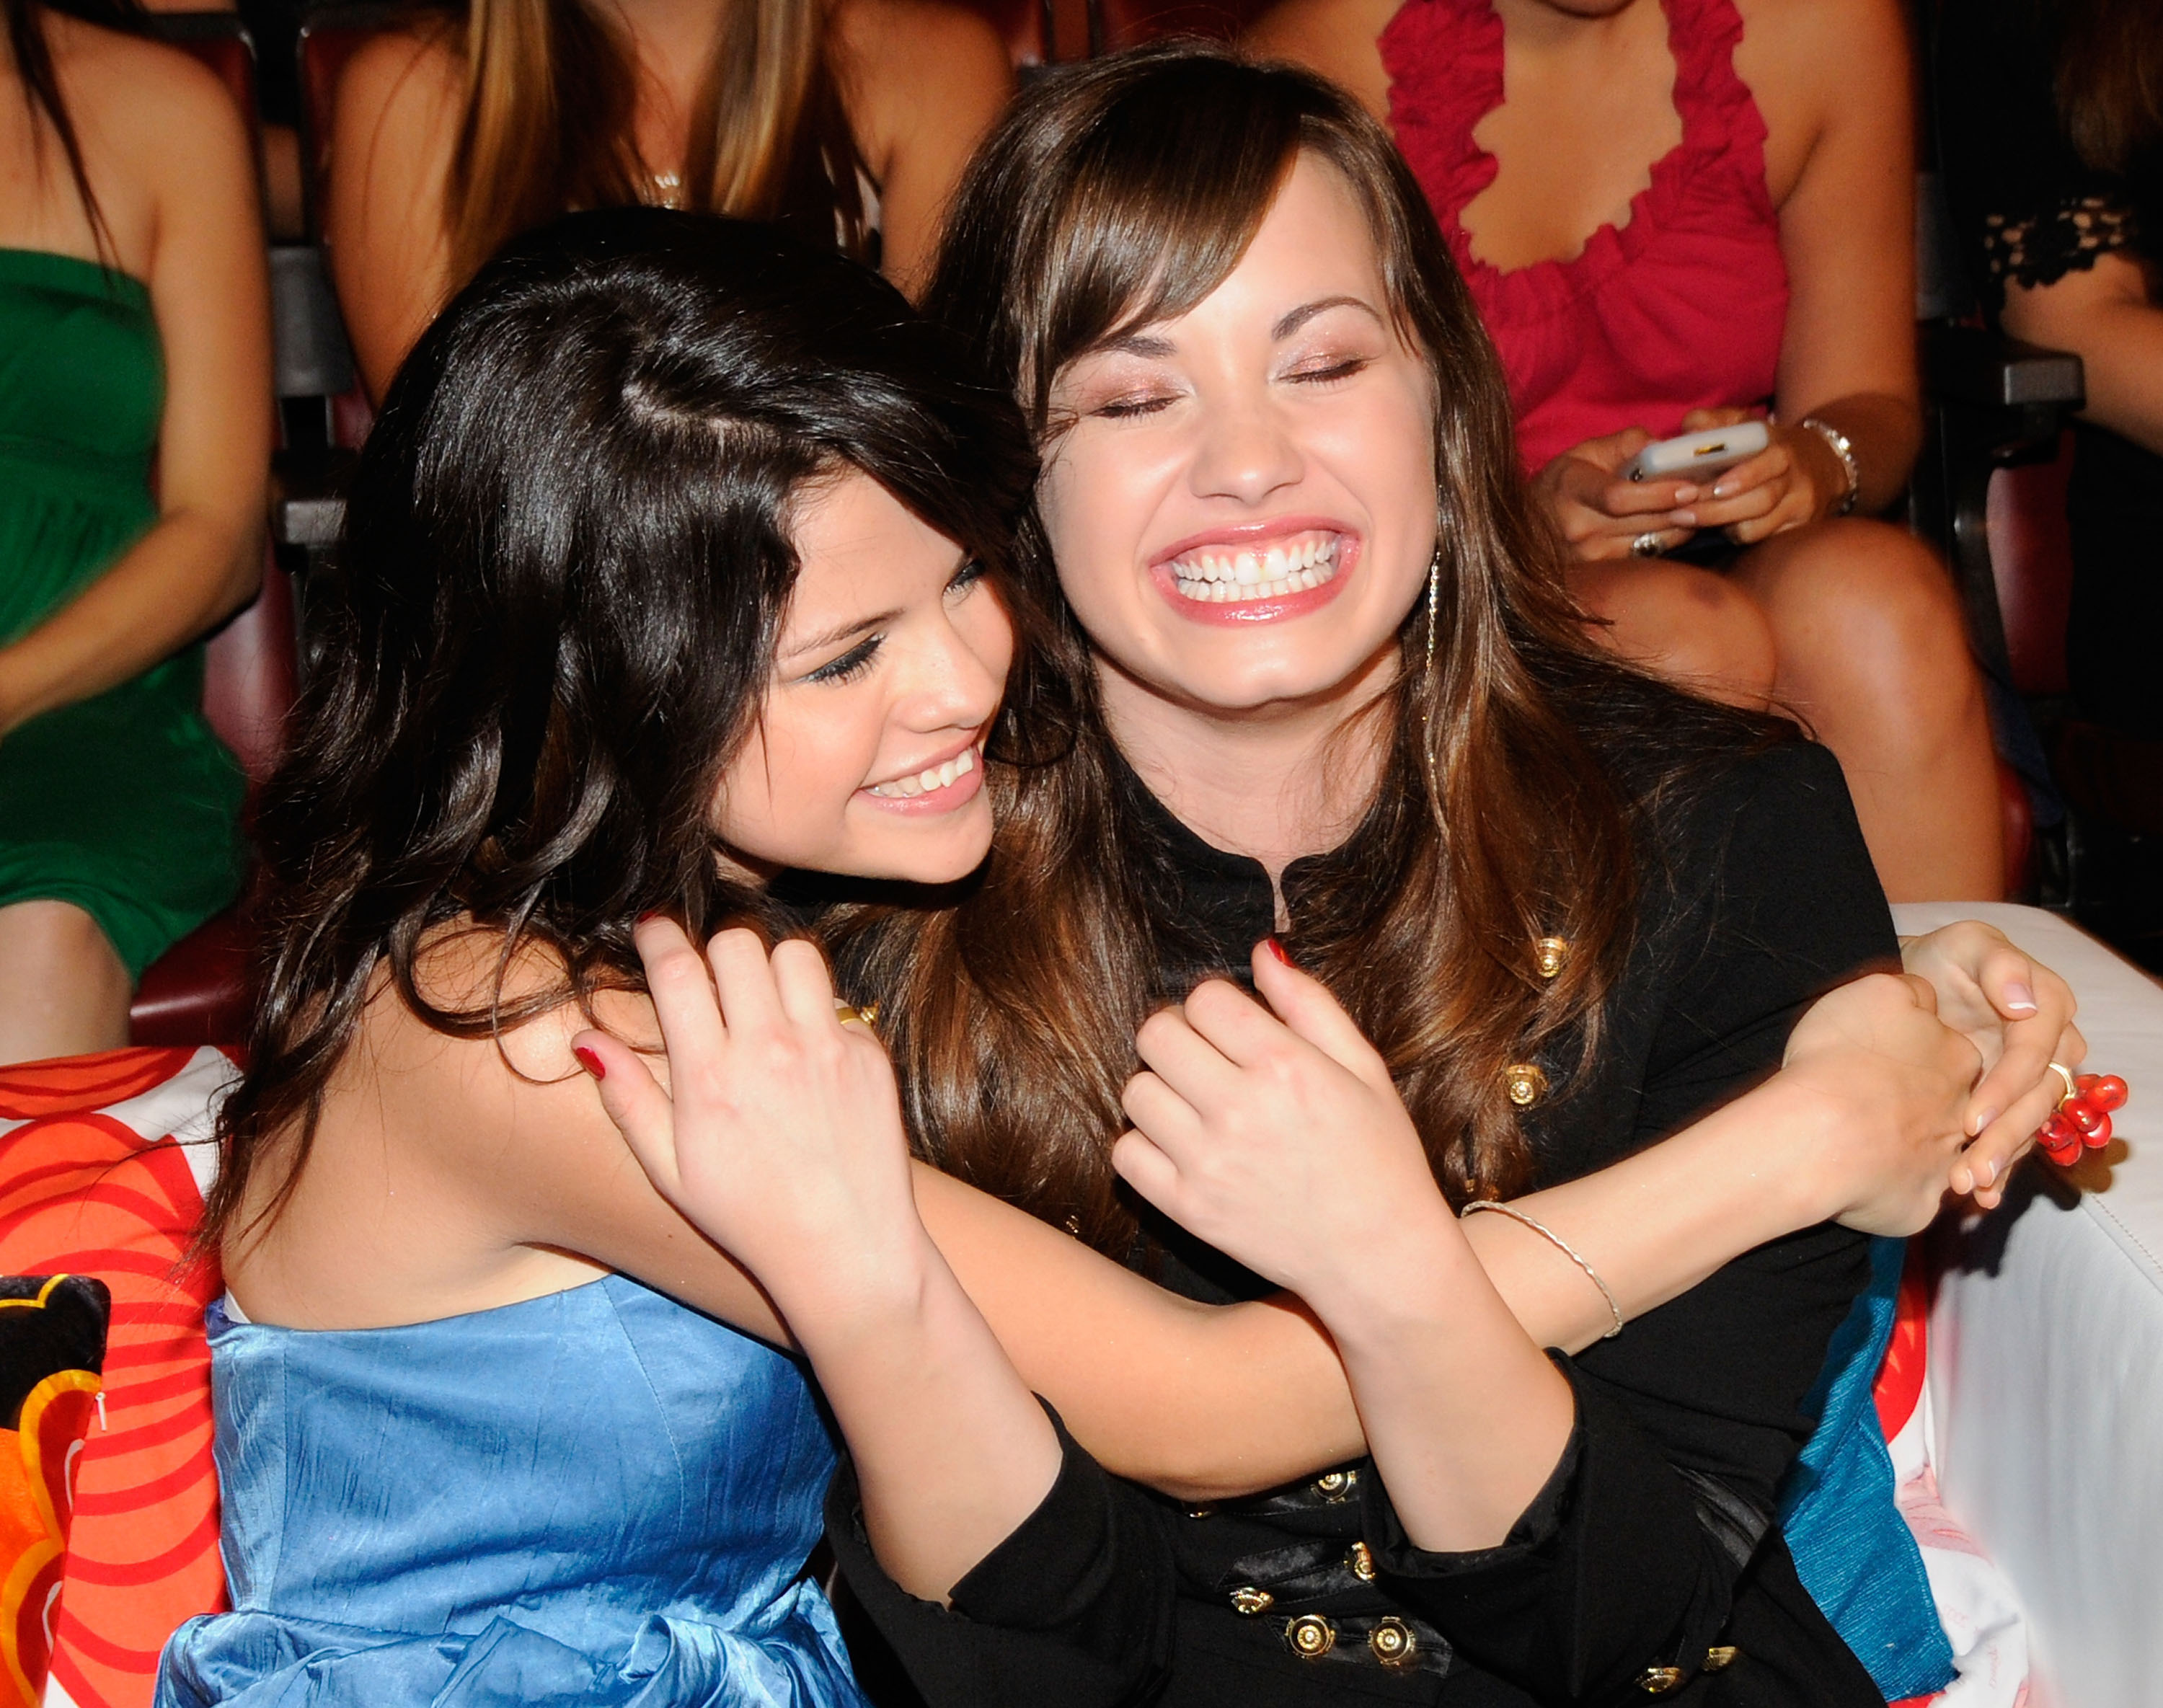 Selena Gomez and Demi Lovato were just photographed together for the first time in six years